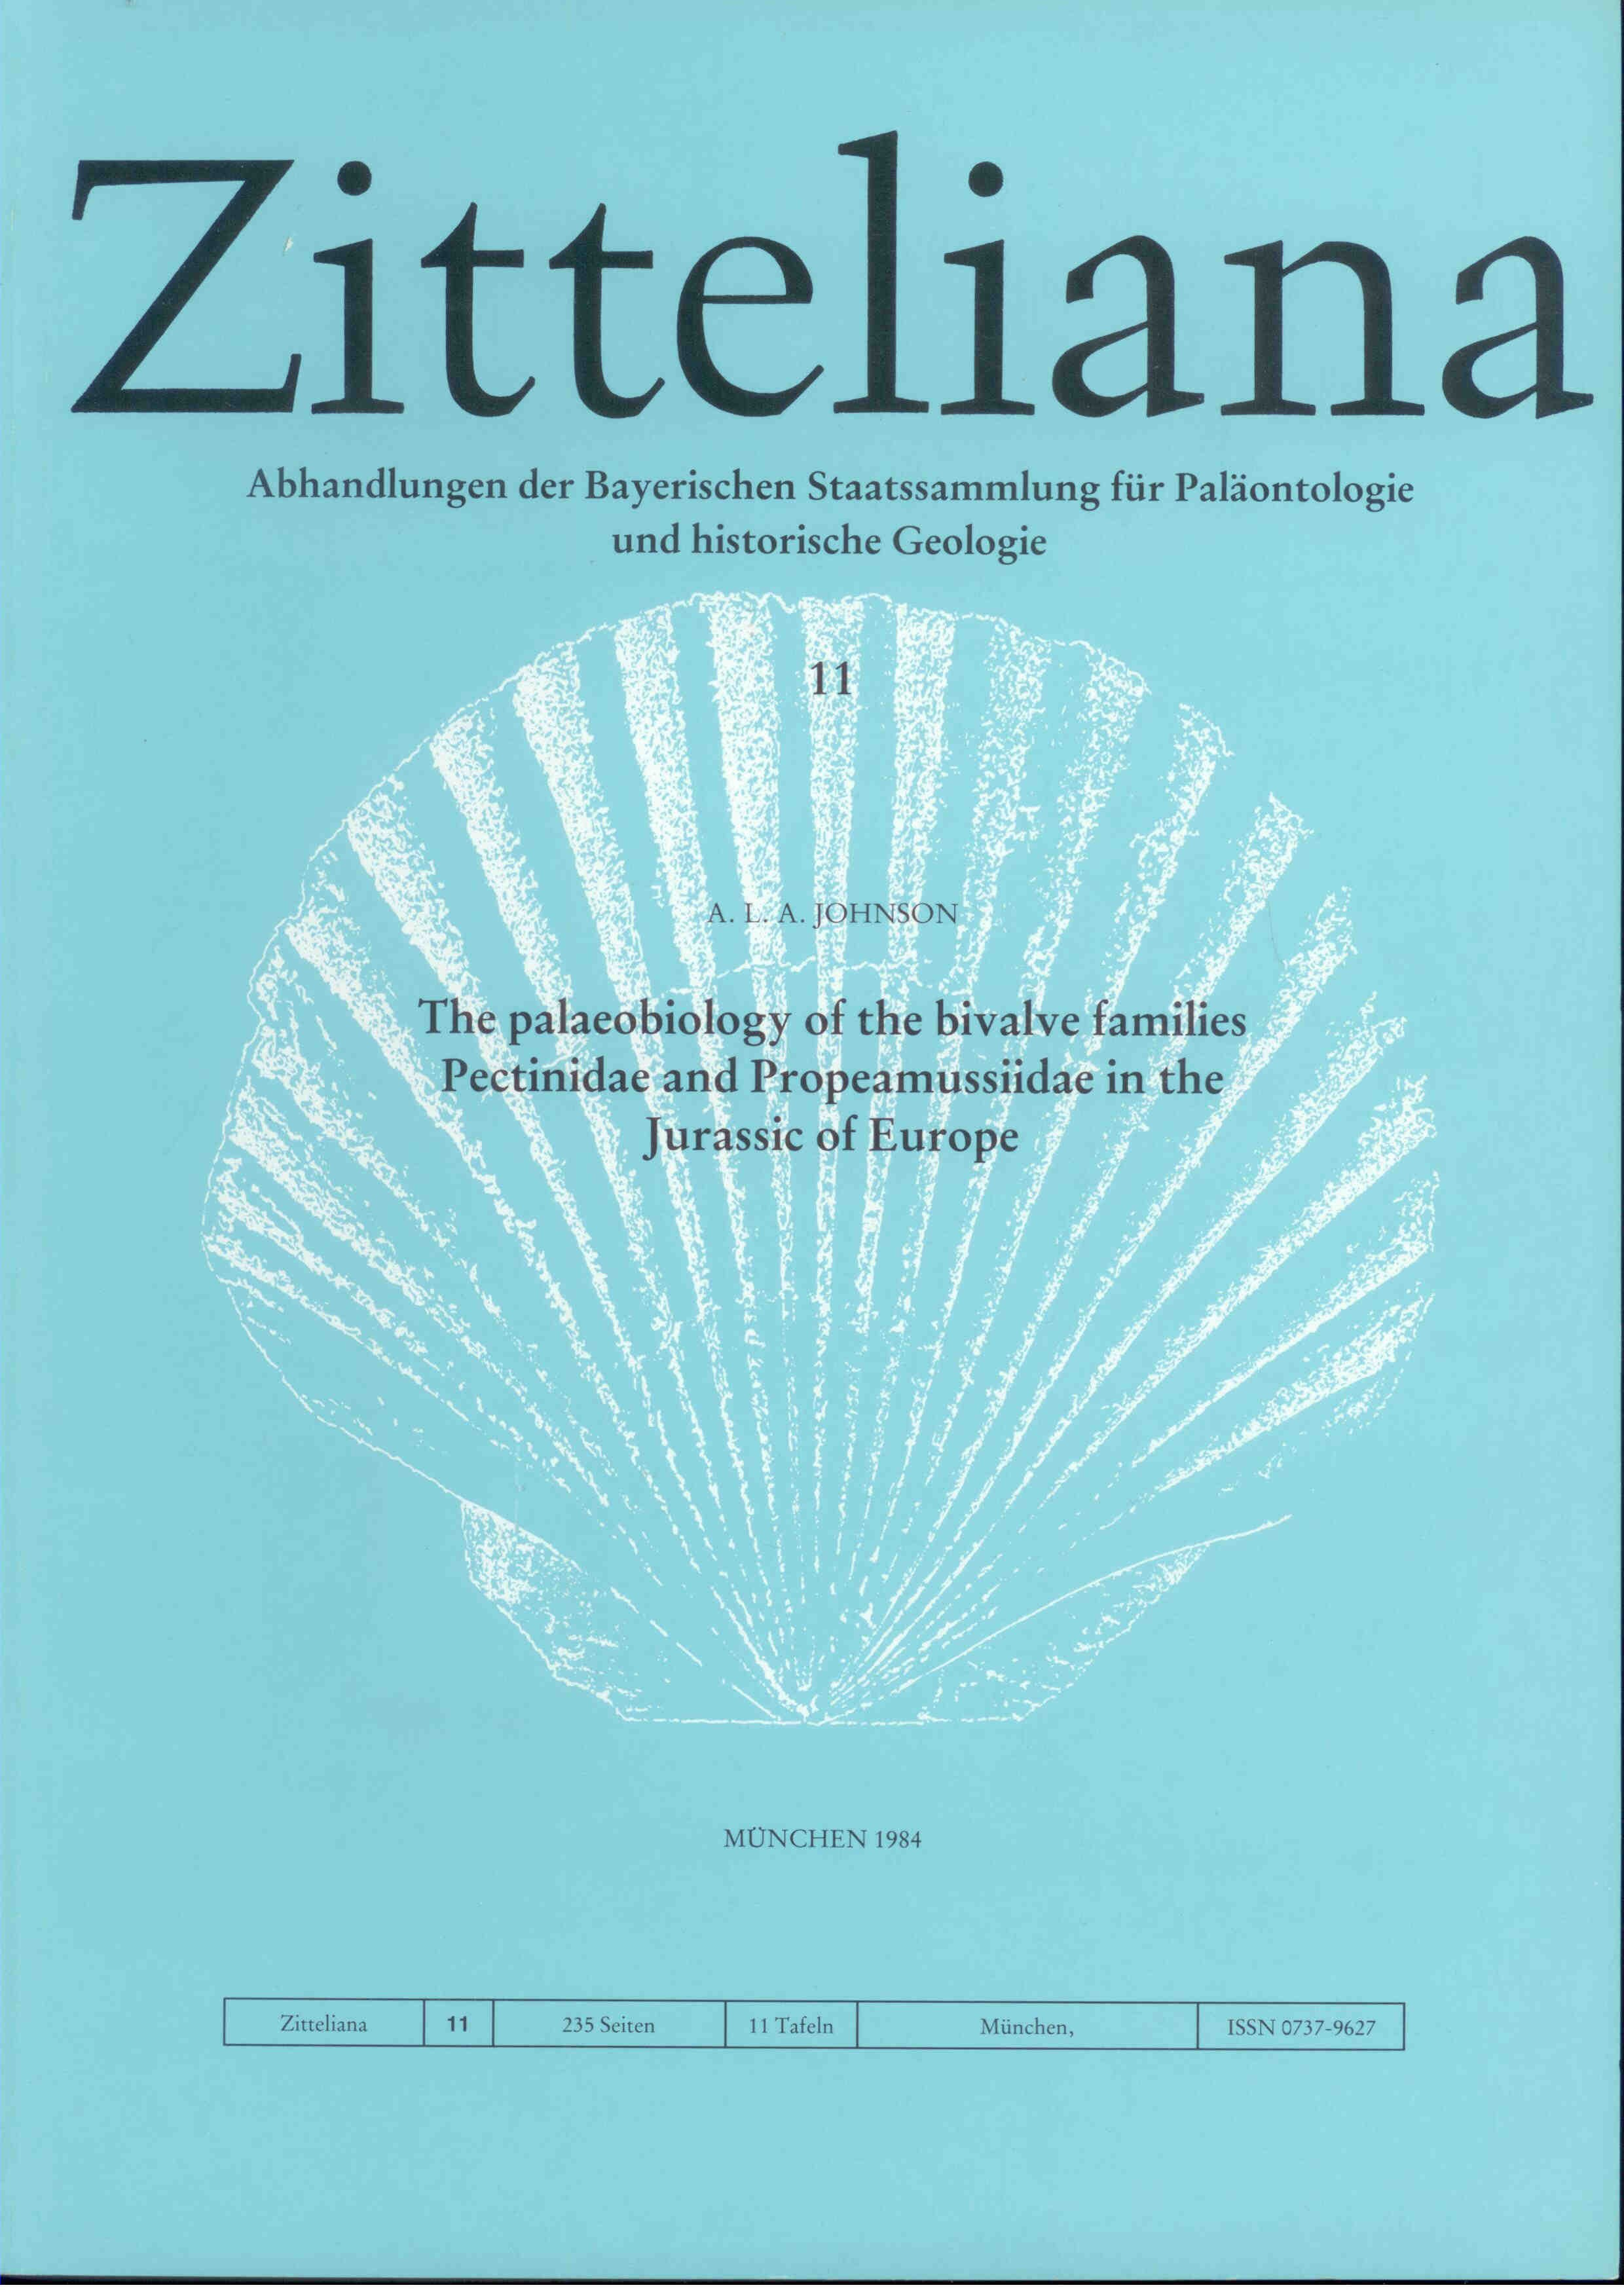 Johnson A. L. A.: The palaeobiology of the bivalve families Pectinidae and Propeamussiidae in the Jurassic of Europe. ZITTELIANA 11